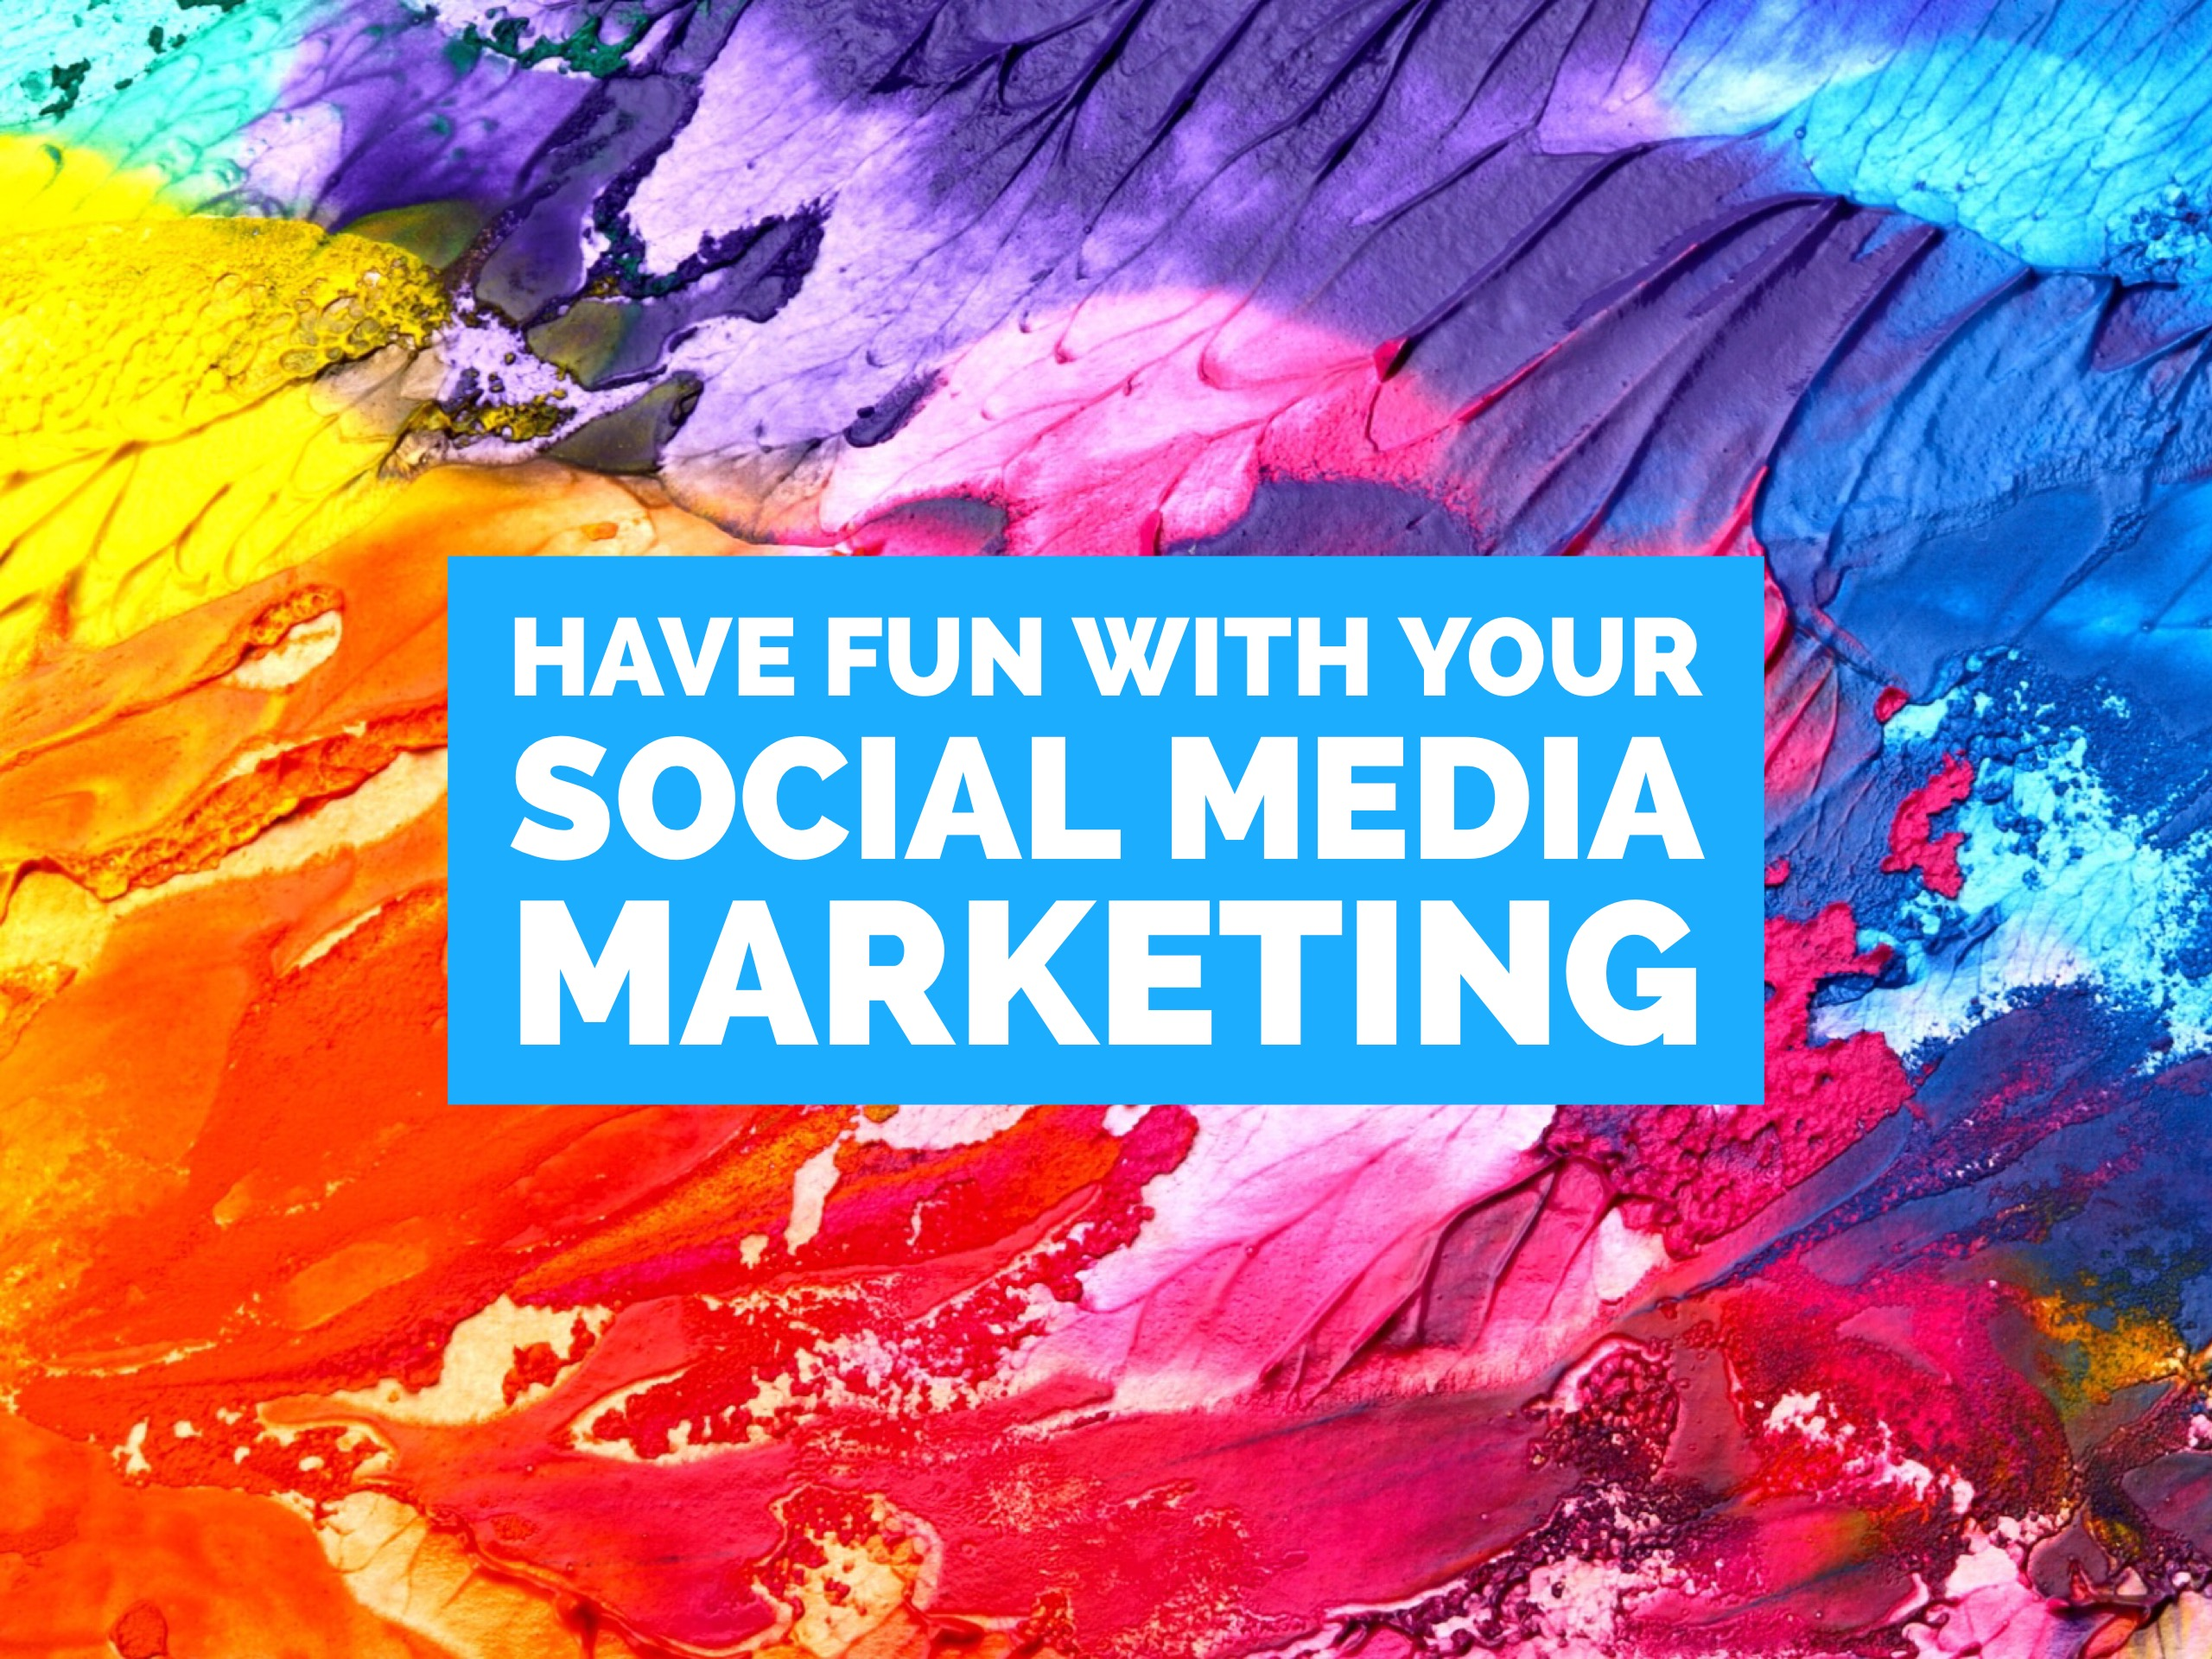 Have Fun With Your Social Media Marketing